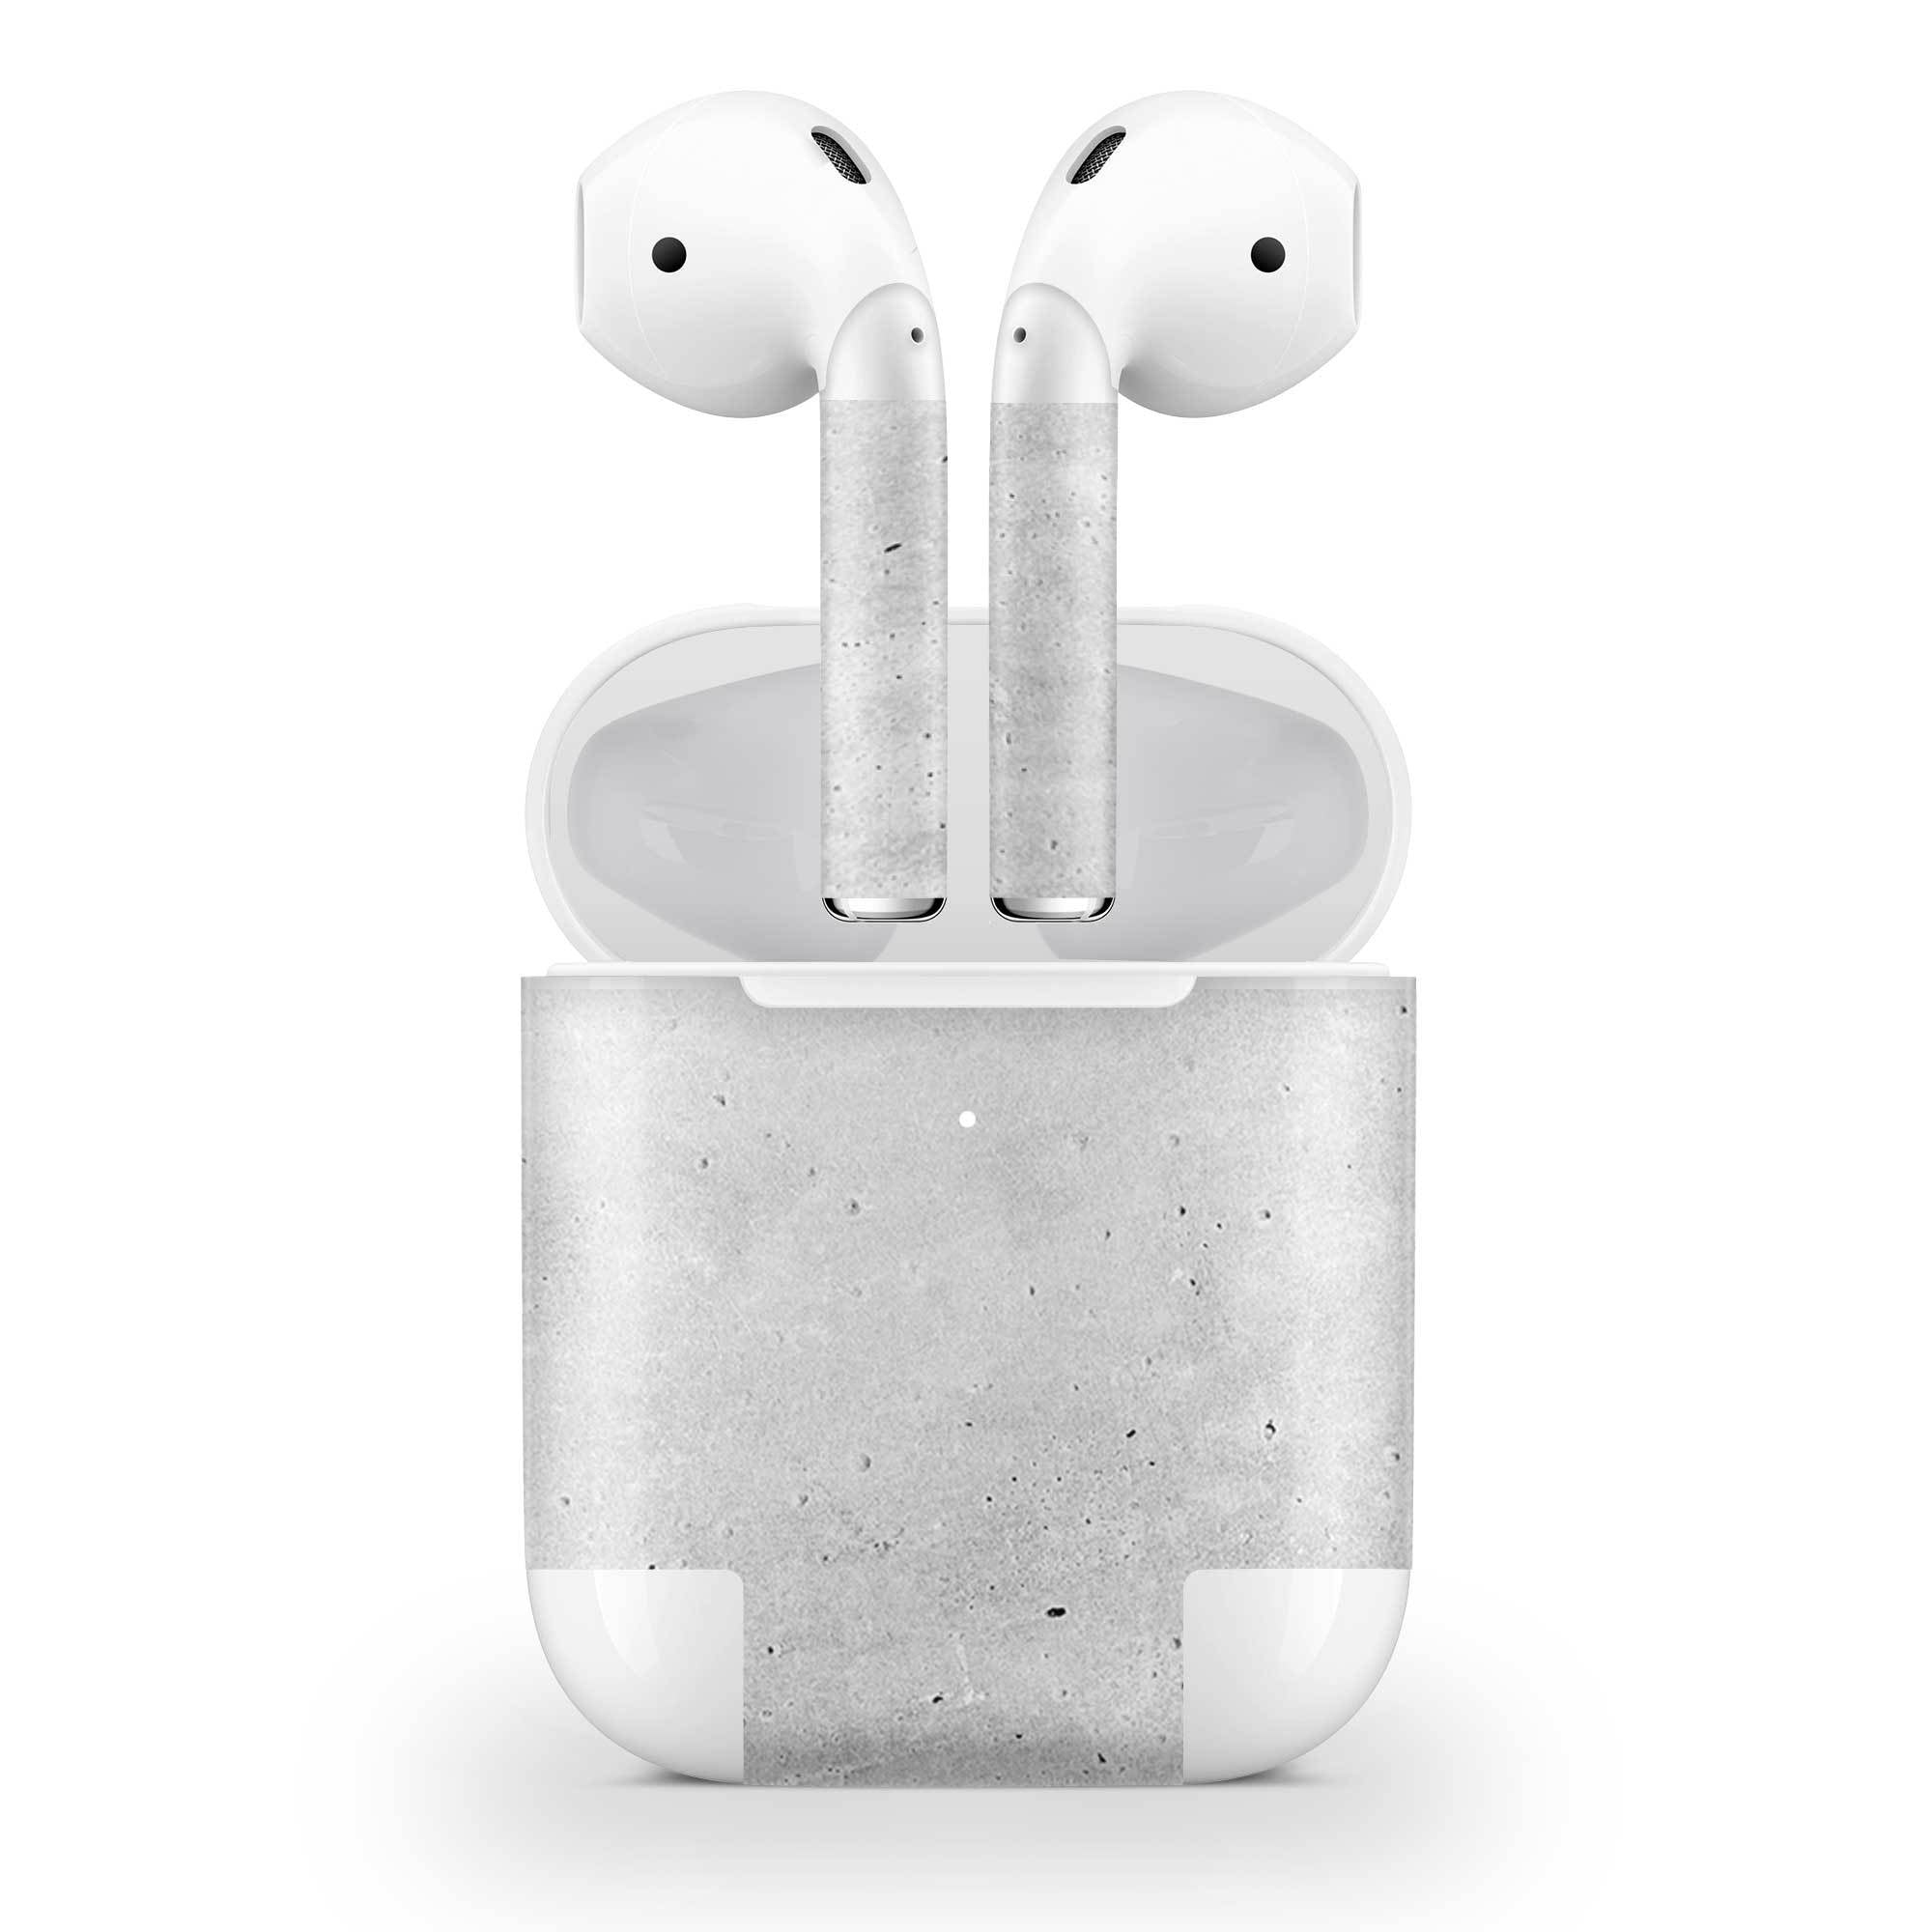 Concrete Skin AirPods Wireless Charging Case